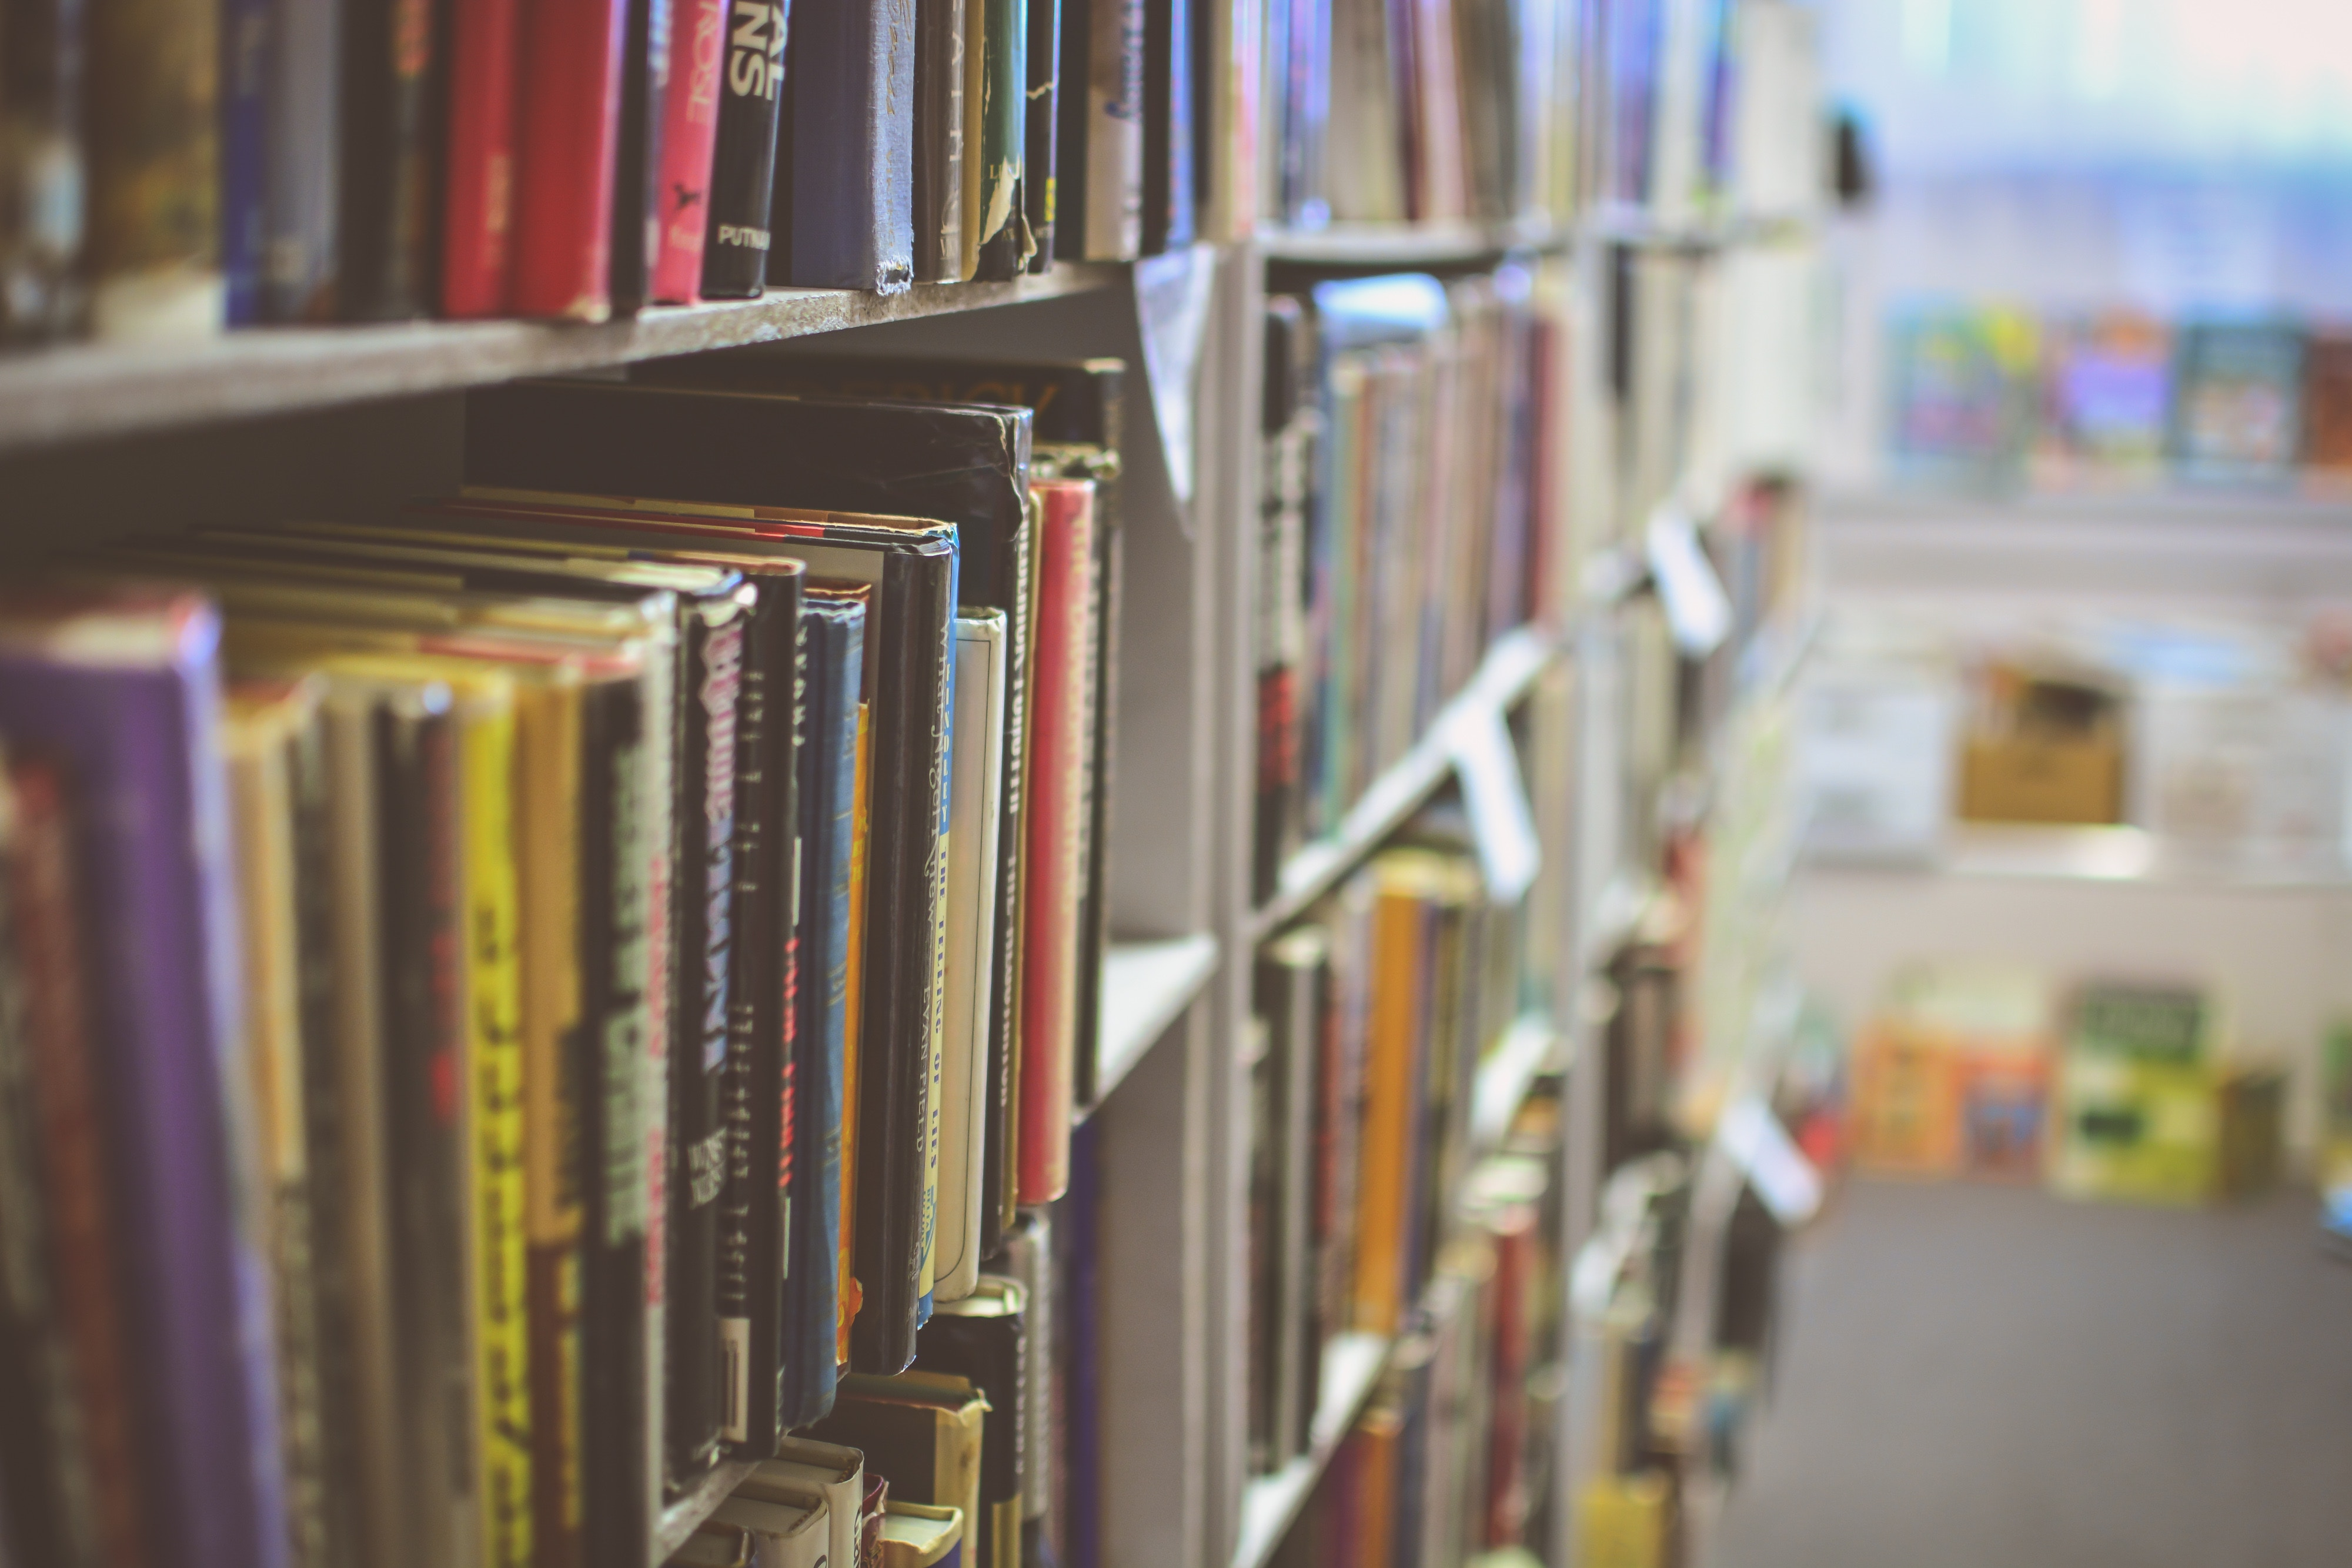 Image of a book shelf